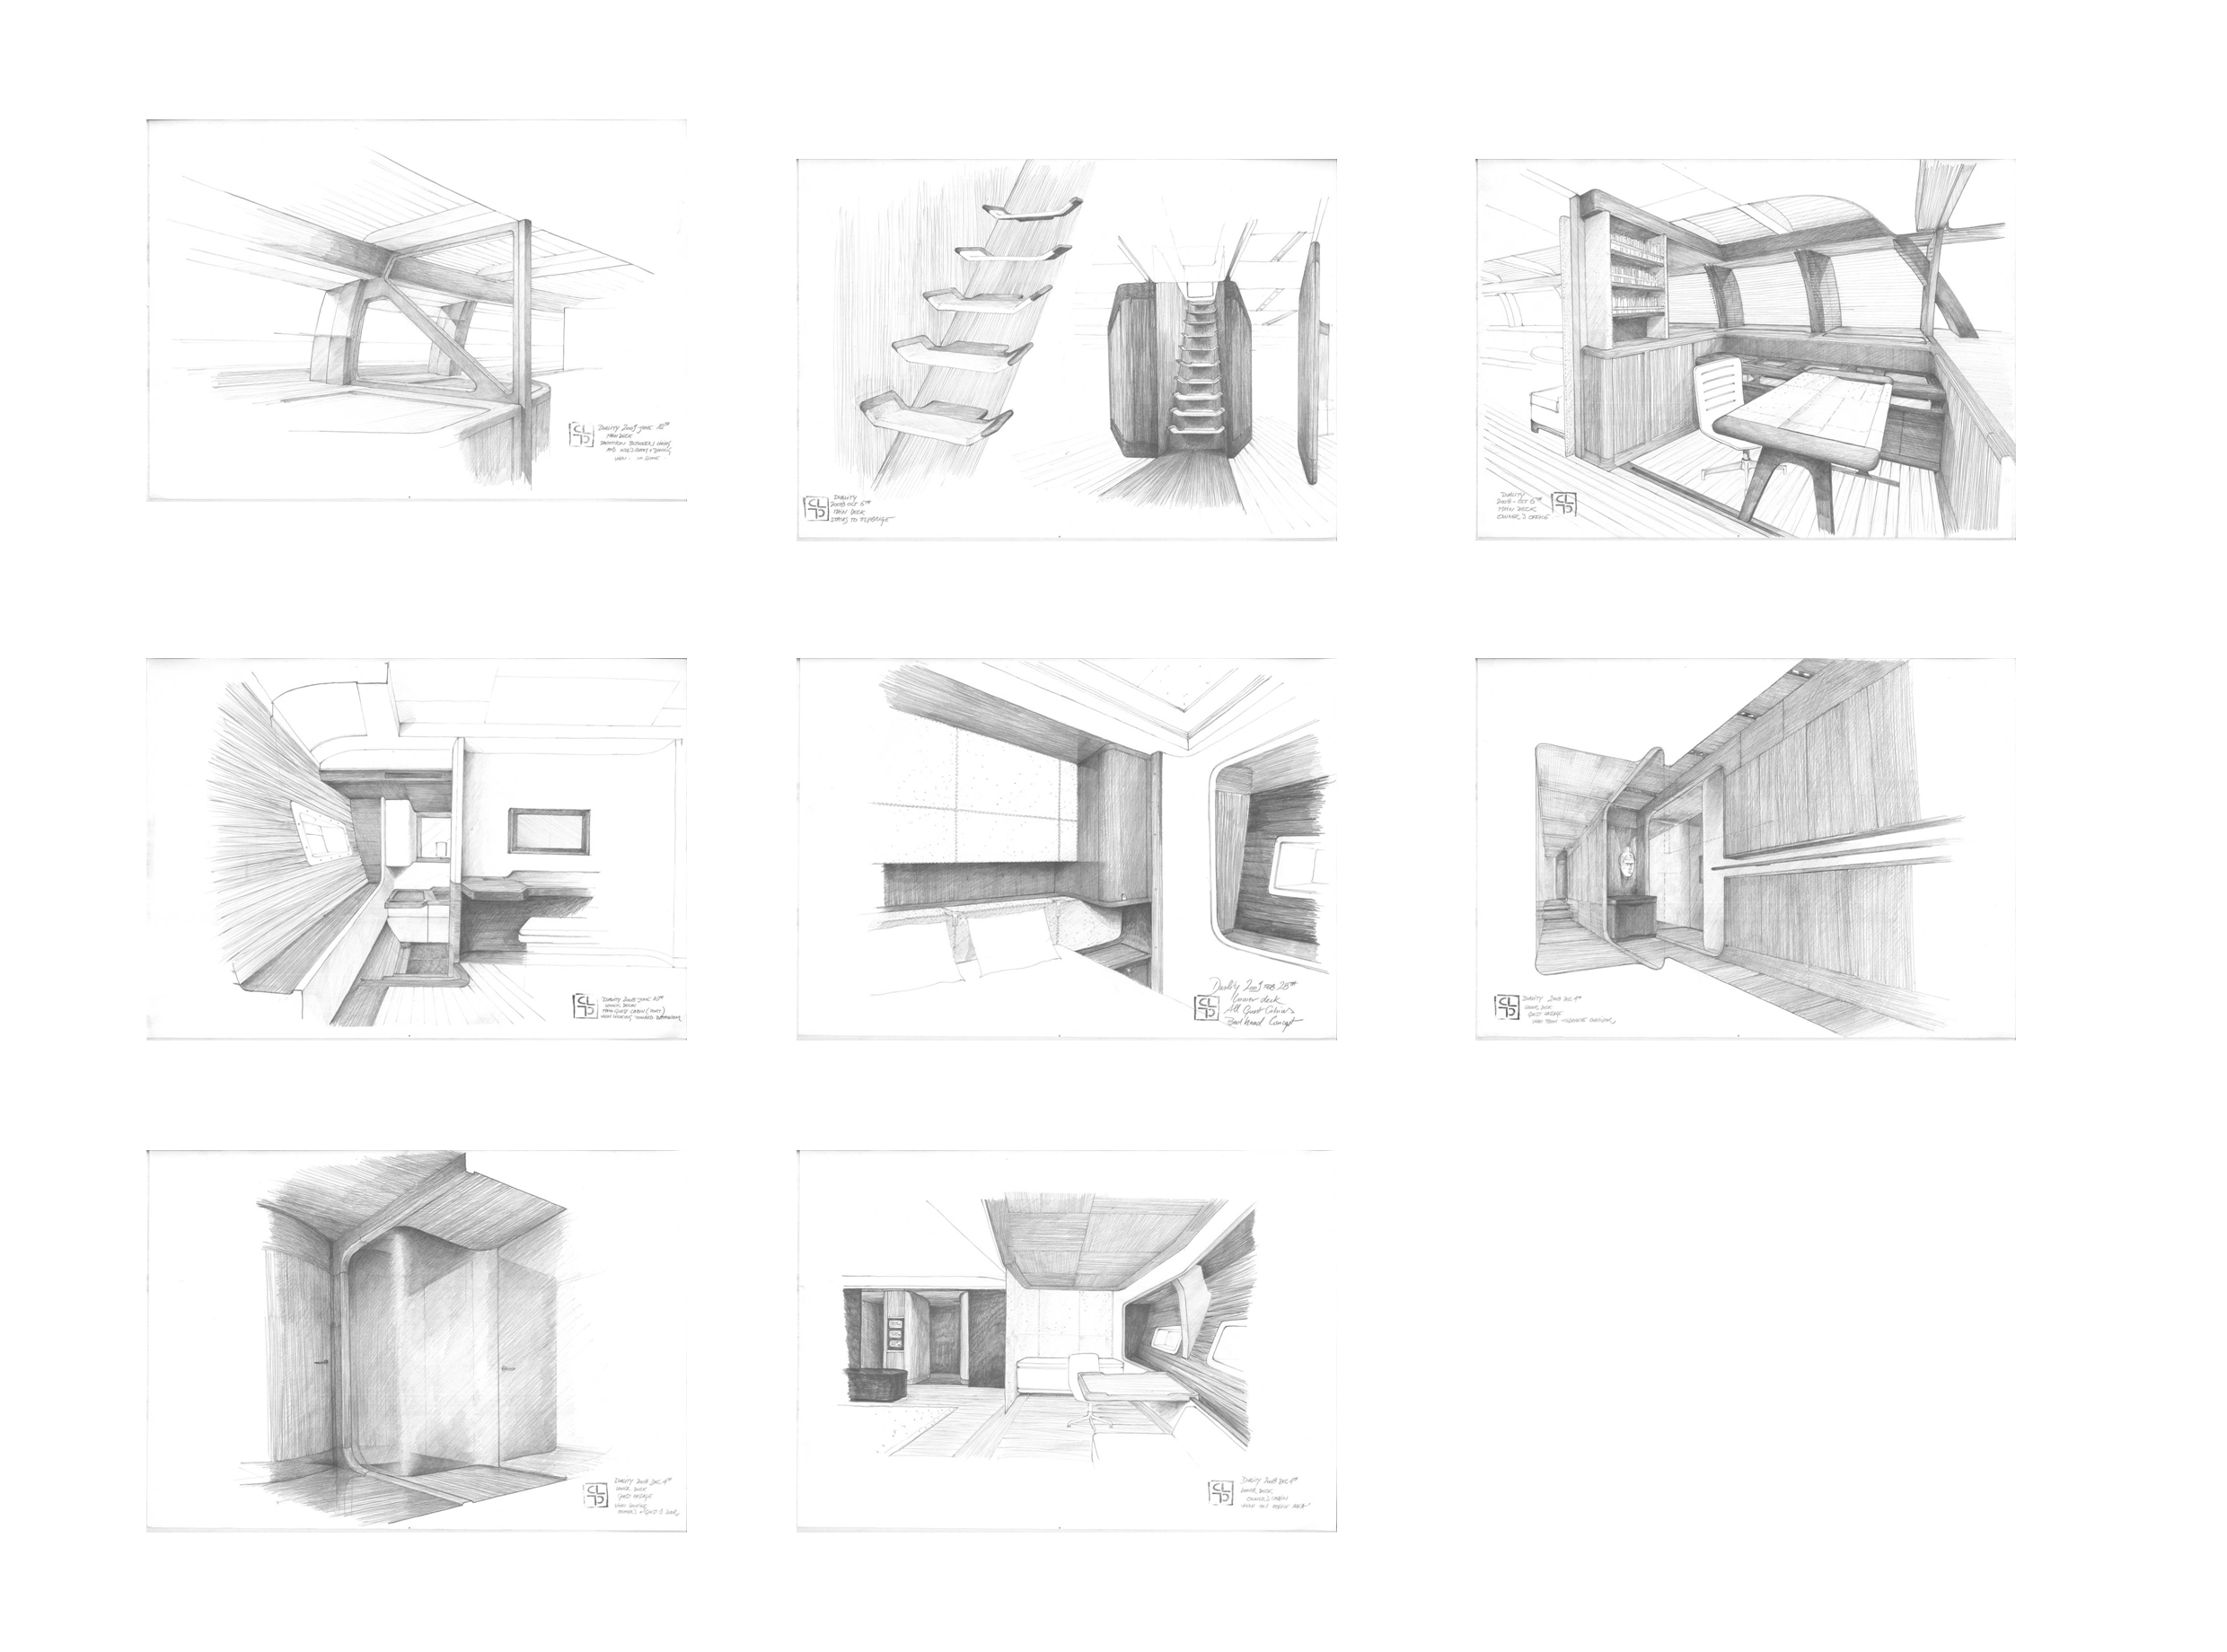 Christian liaigre interior designer drawings of the alloy for Interior design process